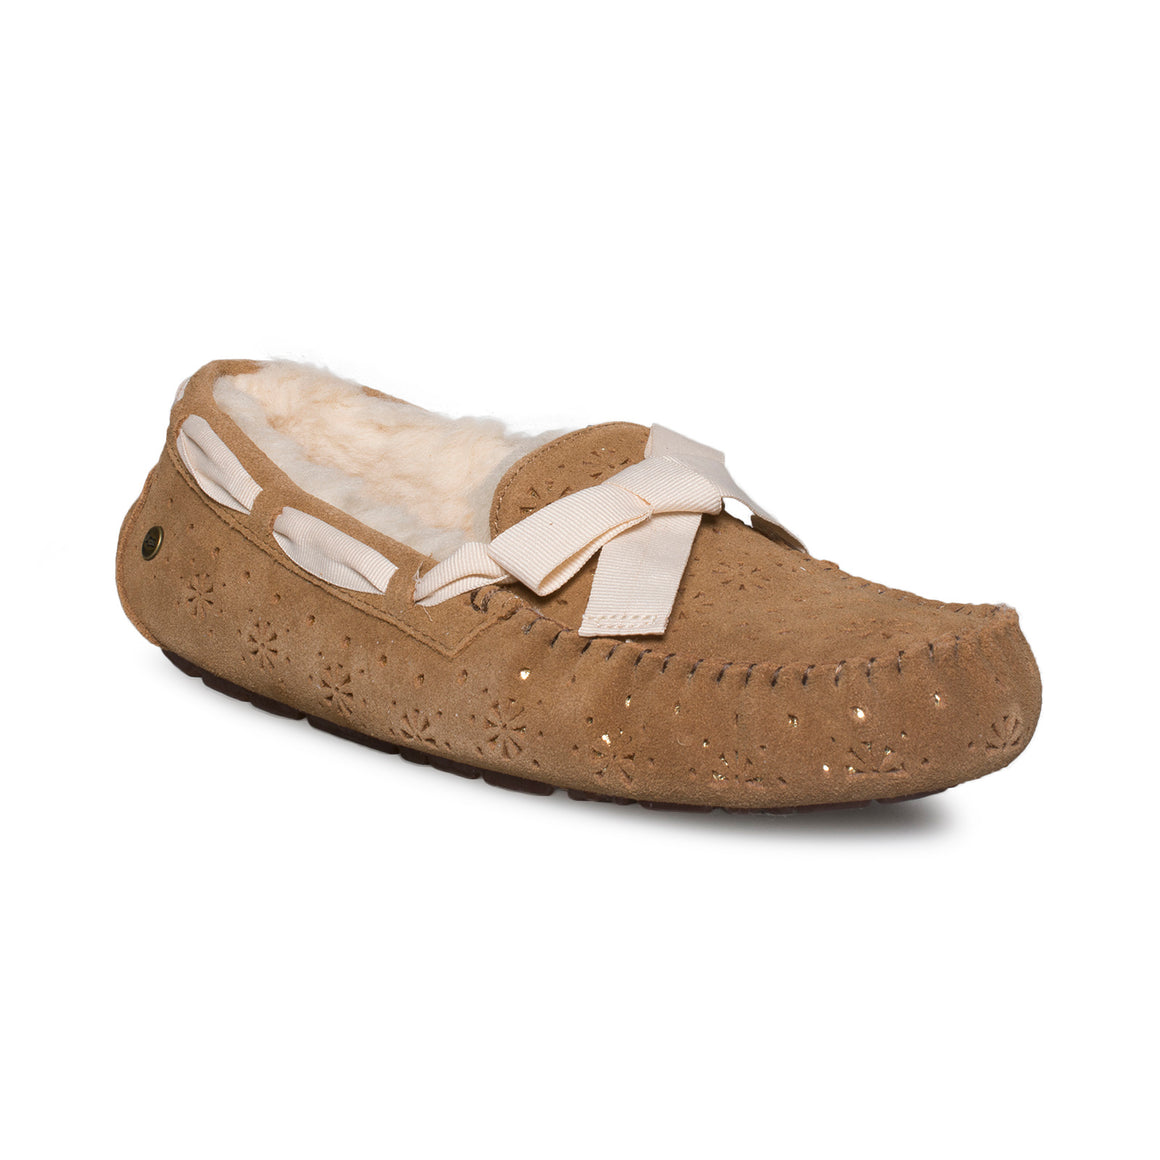 UGG Dakota Sunshine Perf Chestnut Slippers - Women's